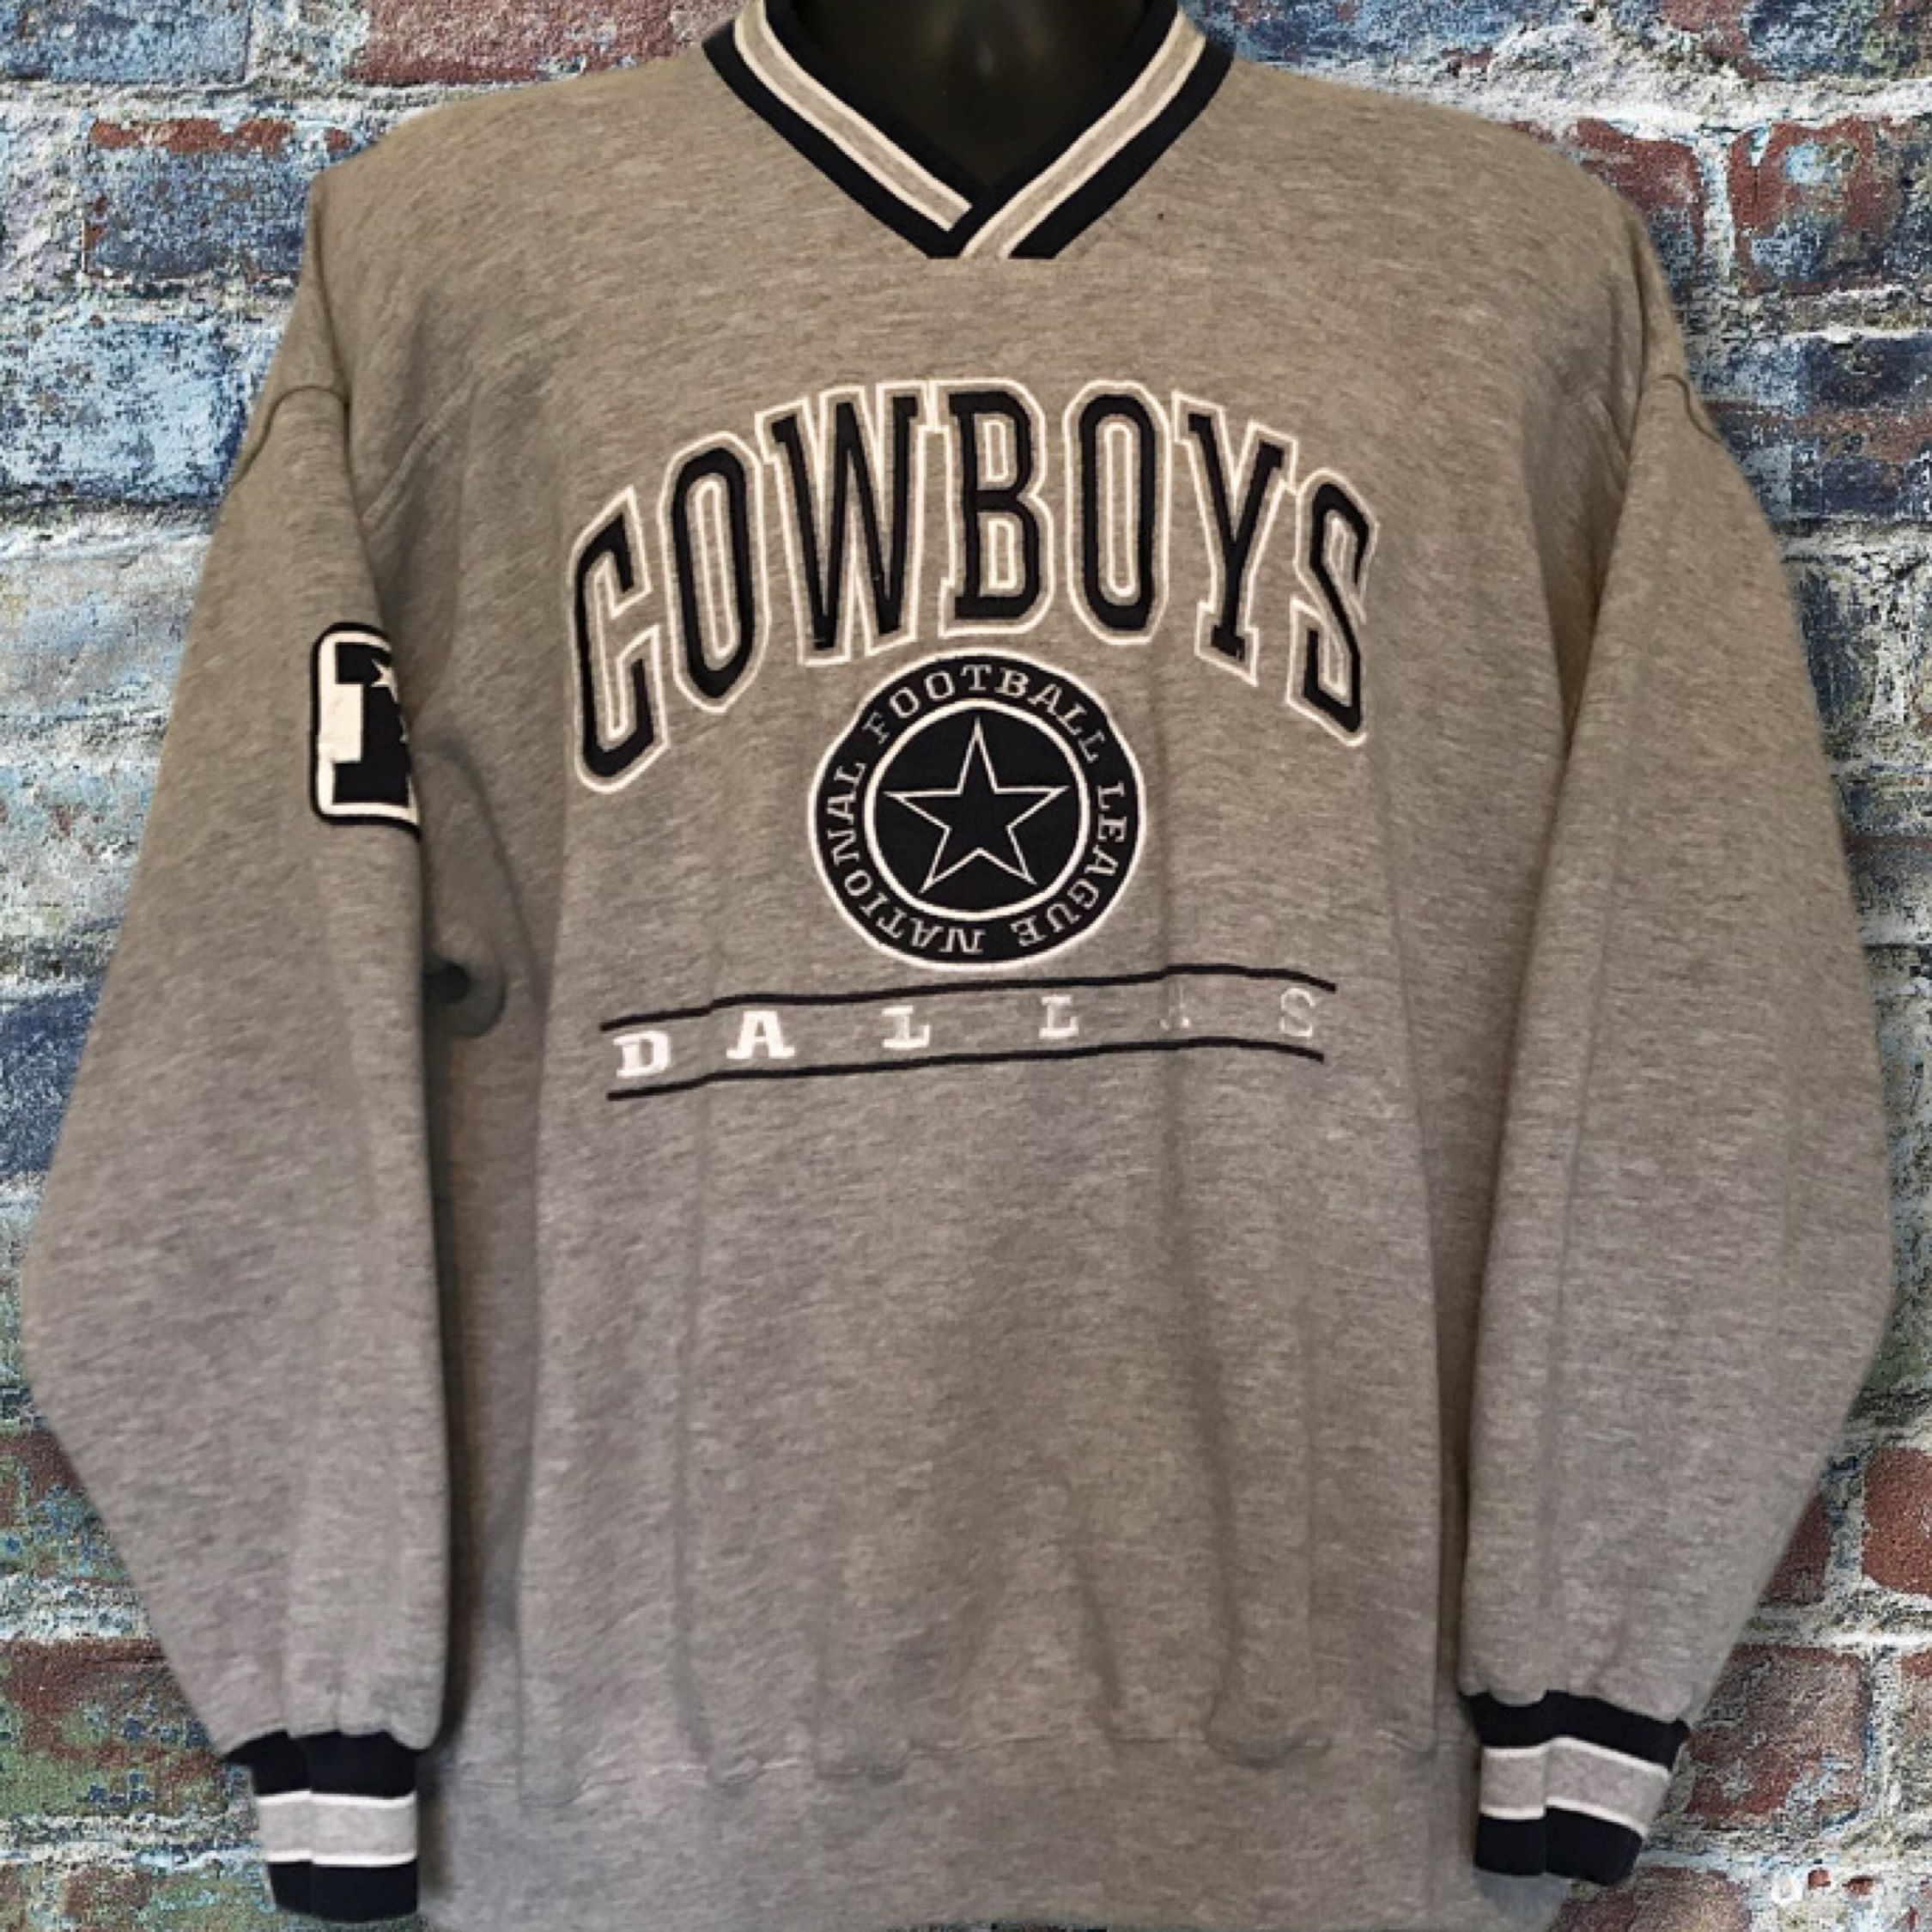 the best attitude f6bdd ceb72 Vintage Nfl Dallas Cowboys Football Sweatshirt